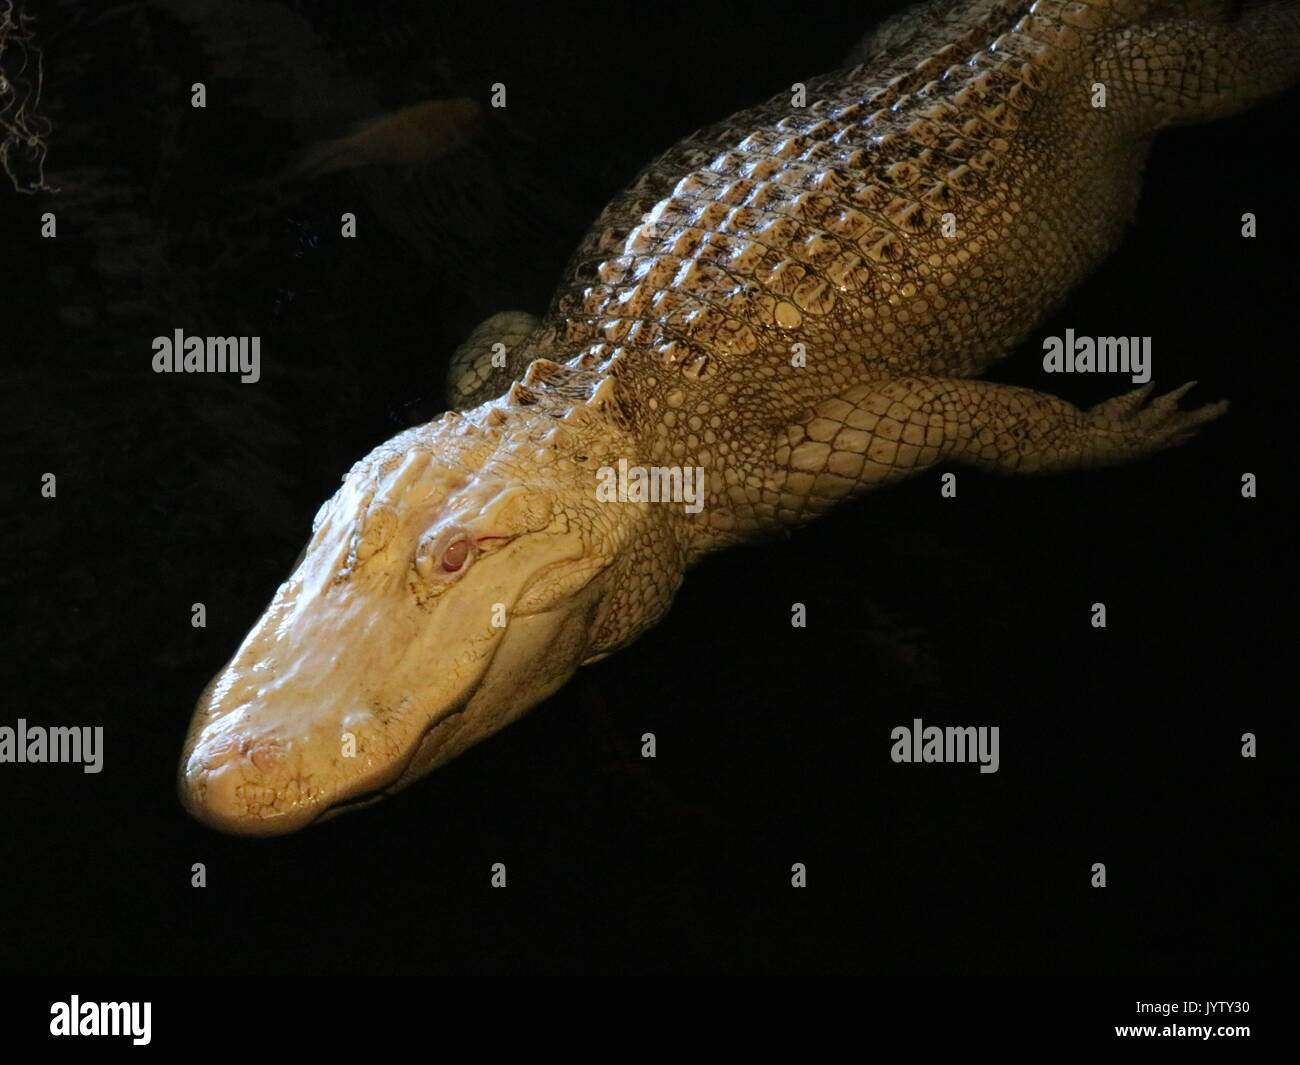 Albino Alligator floating in dark water Stock Photo